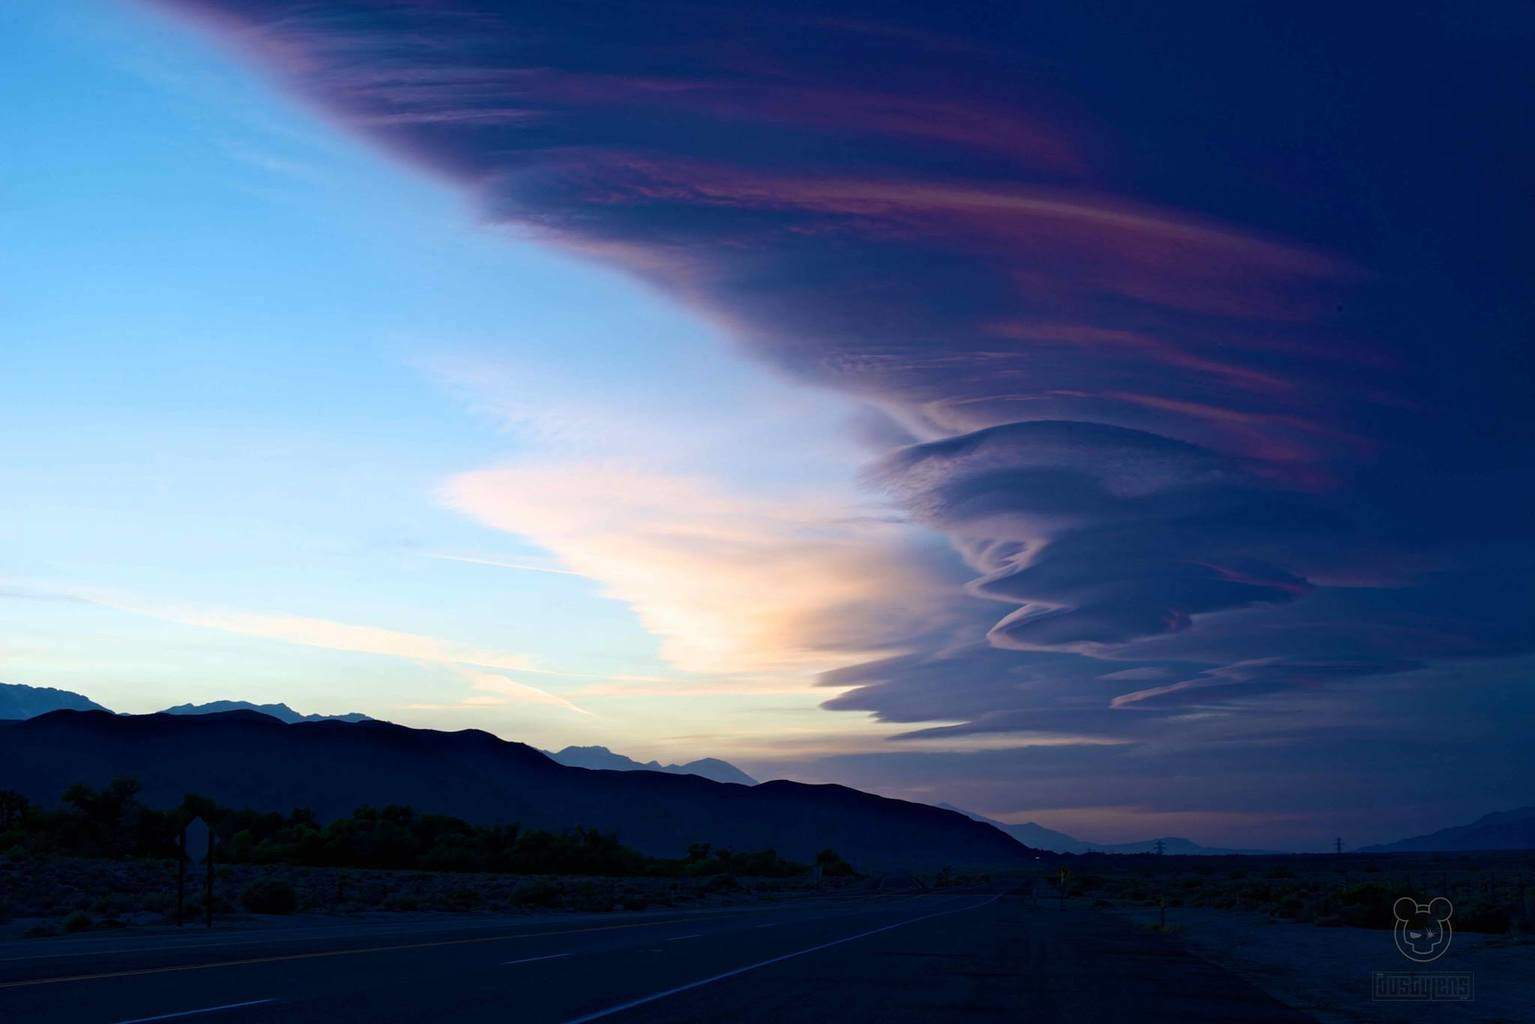 Can't remember if i posted this before, Lenticular clouds at sunset, Lone Pine, CA May, 2014